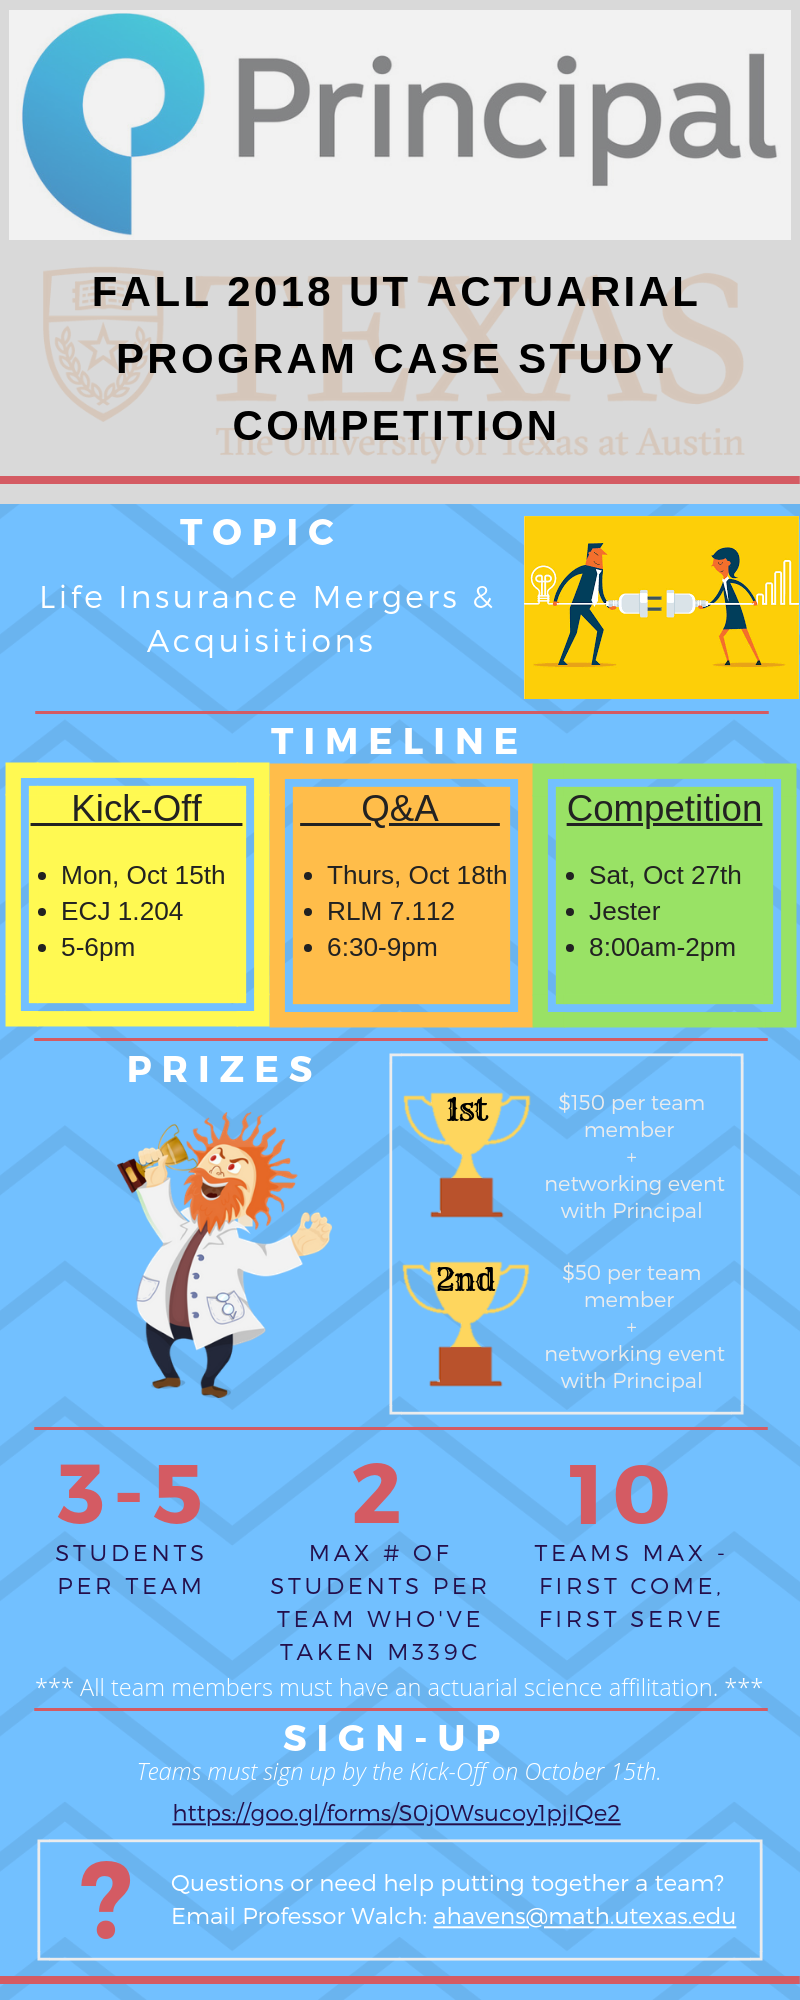 principal_competition_infographic_-_fall_2018.png